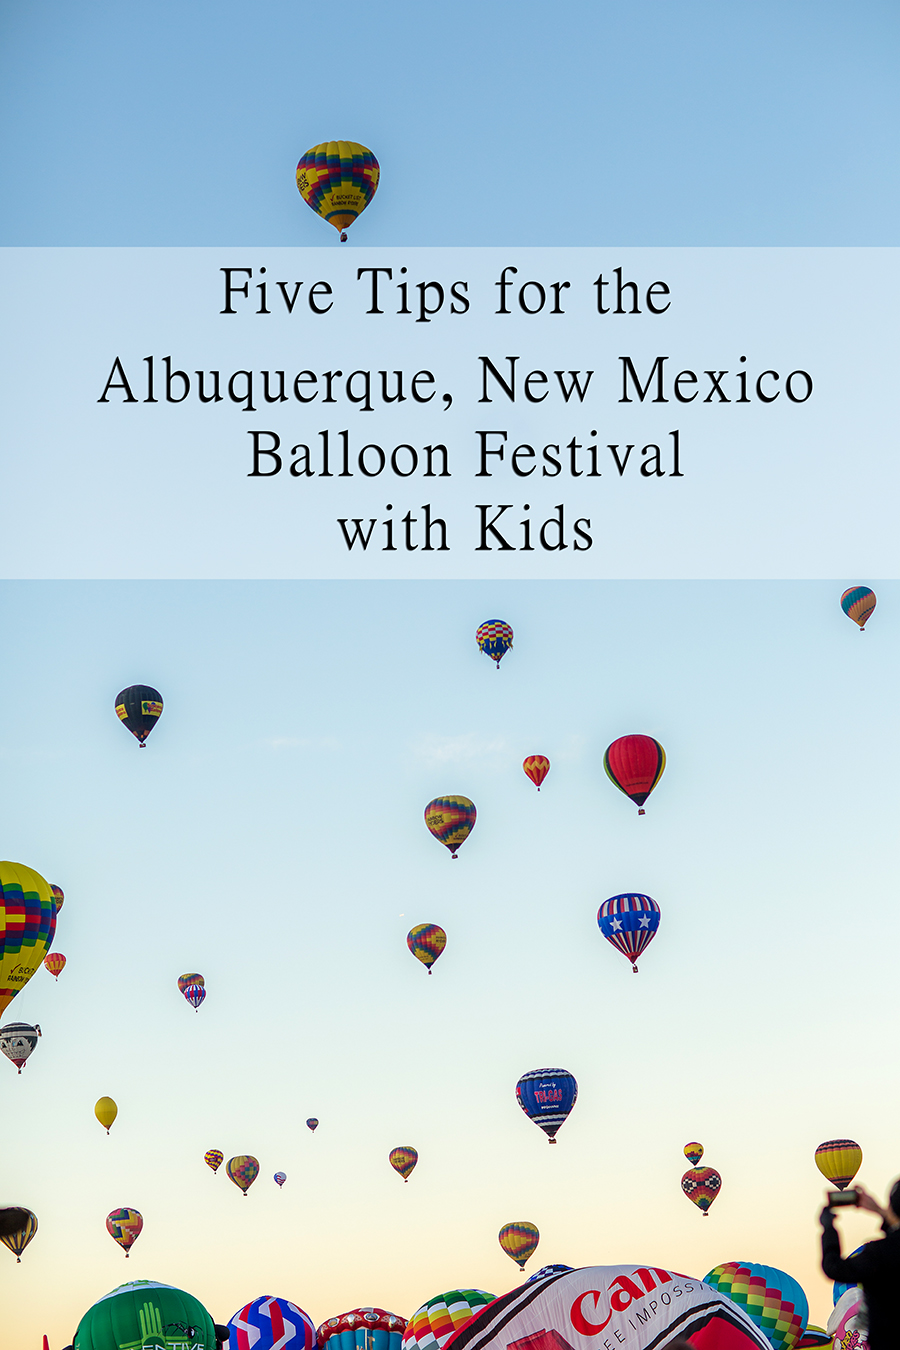 Hot Air Balloon Festival Albuquerque New Mexico with Kids